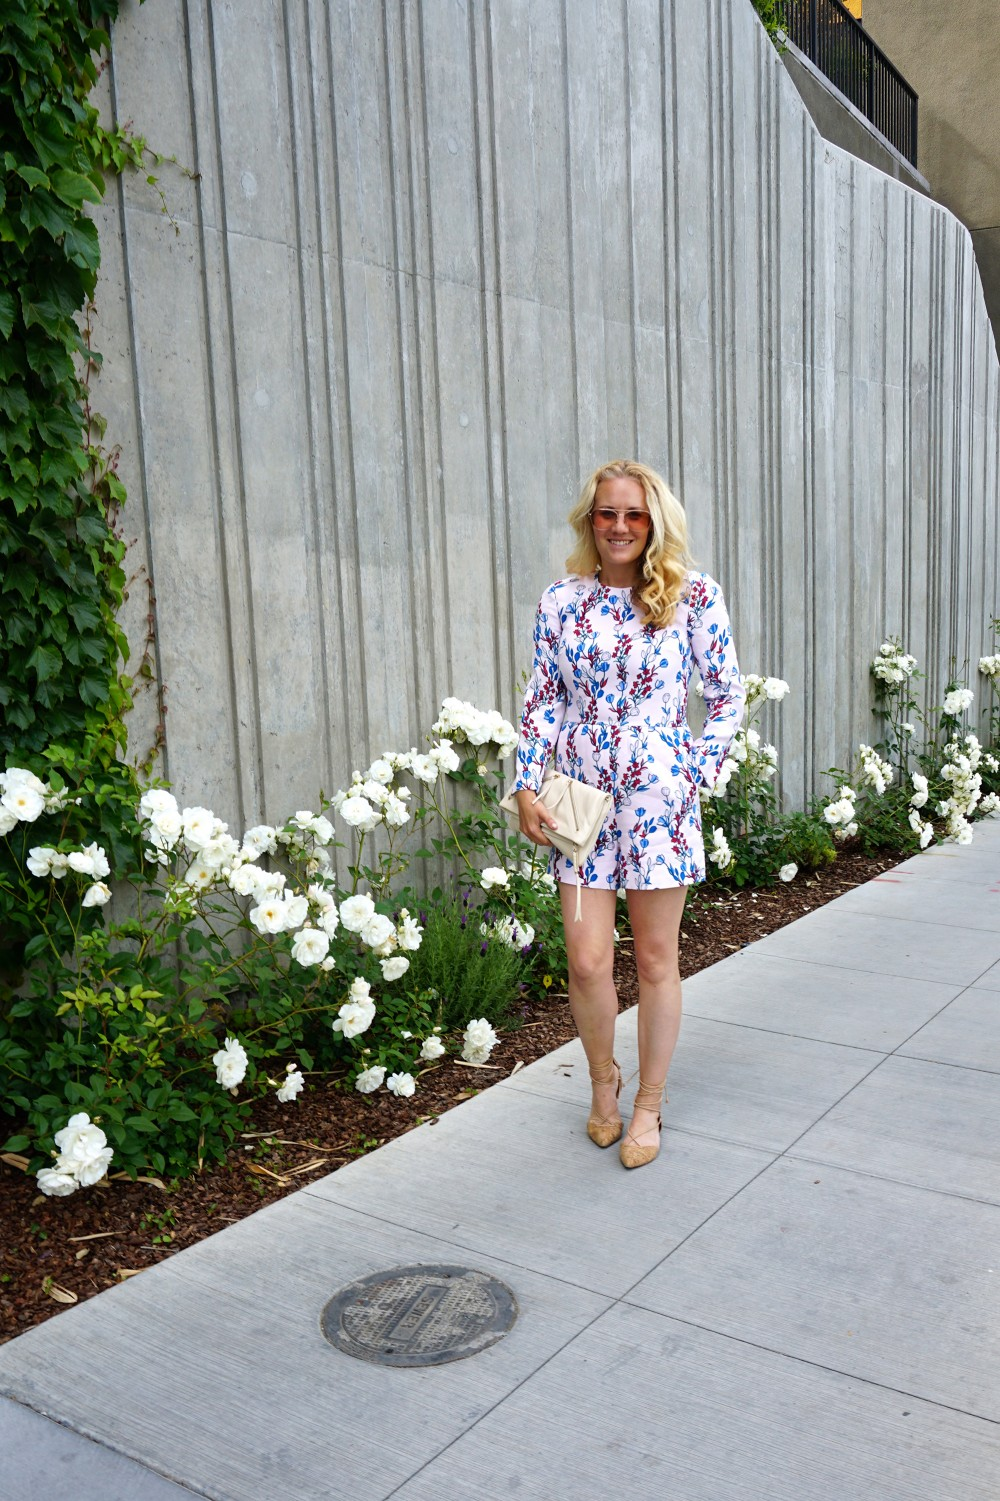 Draper James Romper-Outfit Inspiration-Spring Style-Spring Florals-Mom Style-Style Blogger-Have Need Want 4